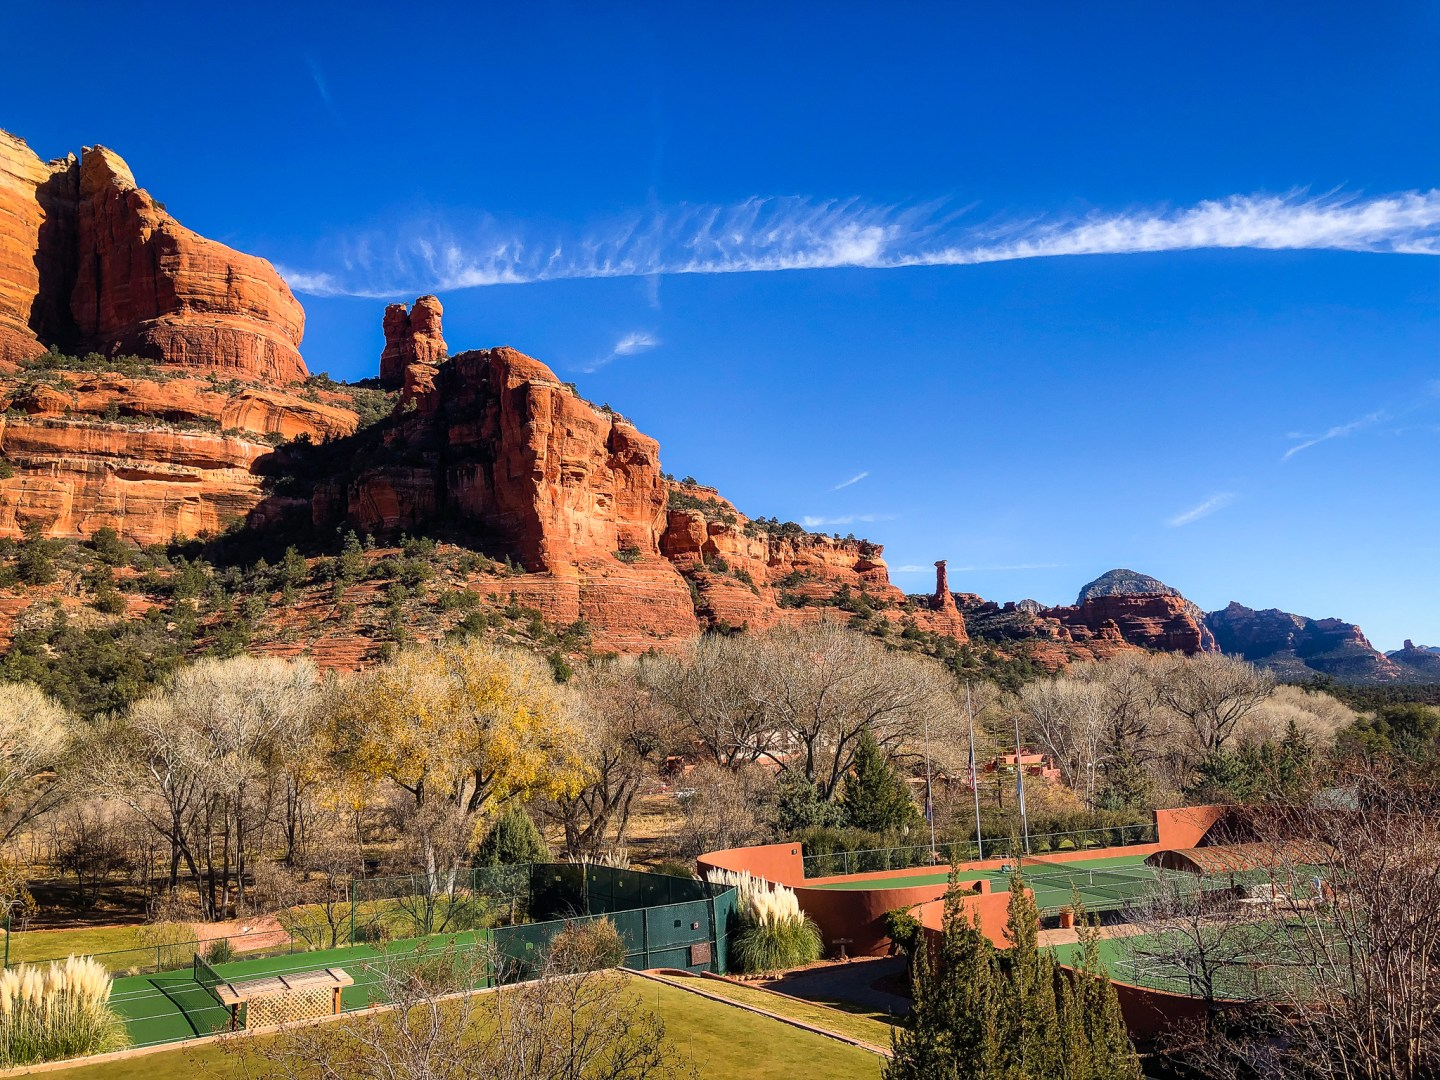 Sedona view from Tii Gavo Restaurant